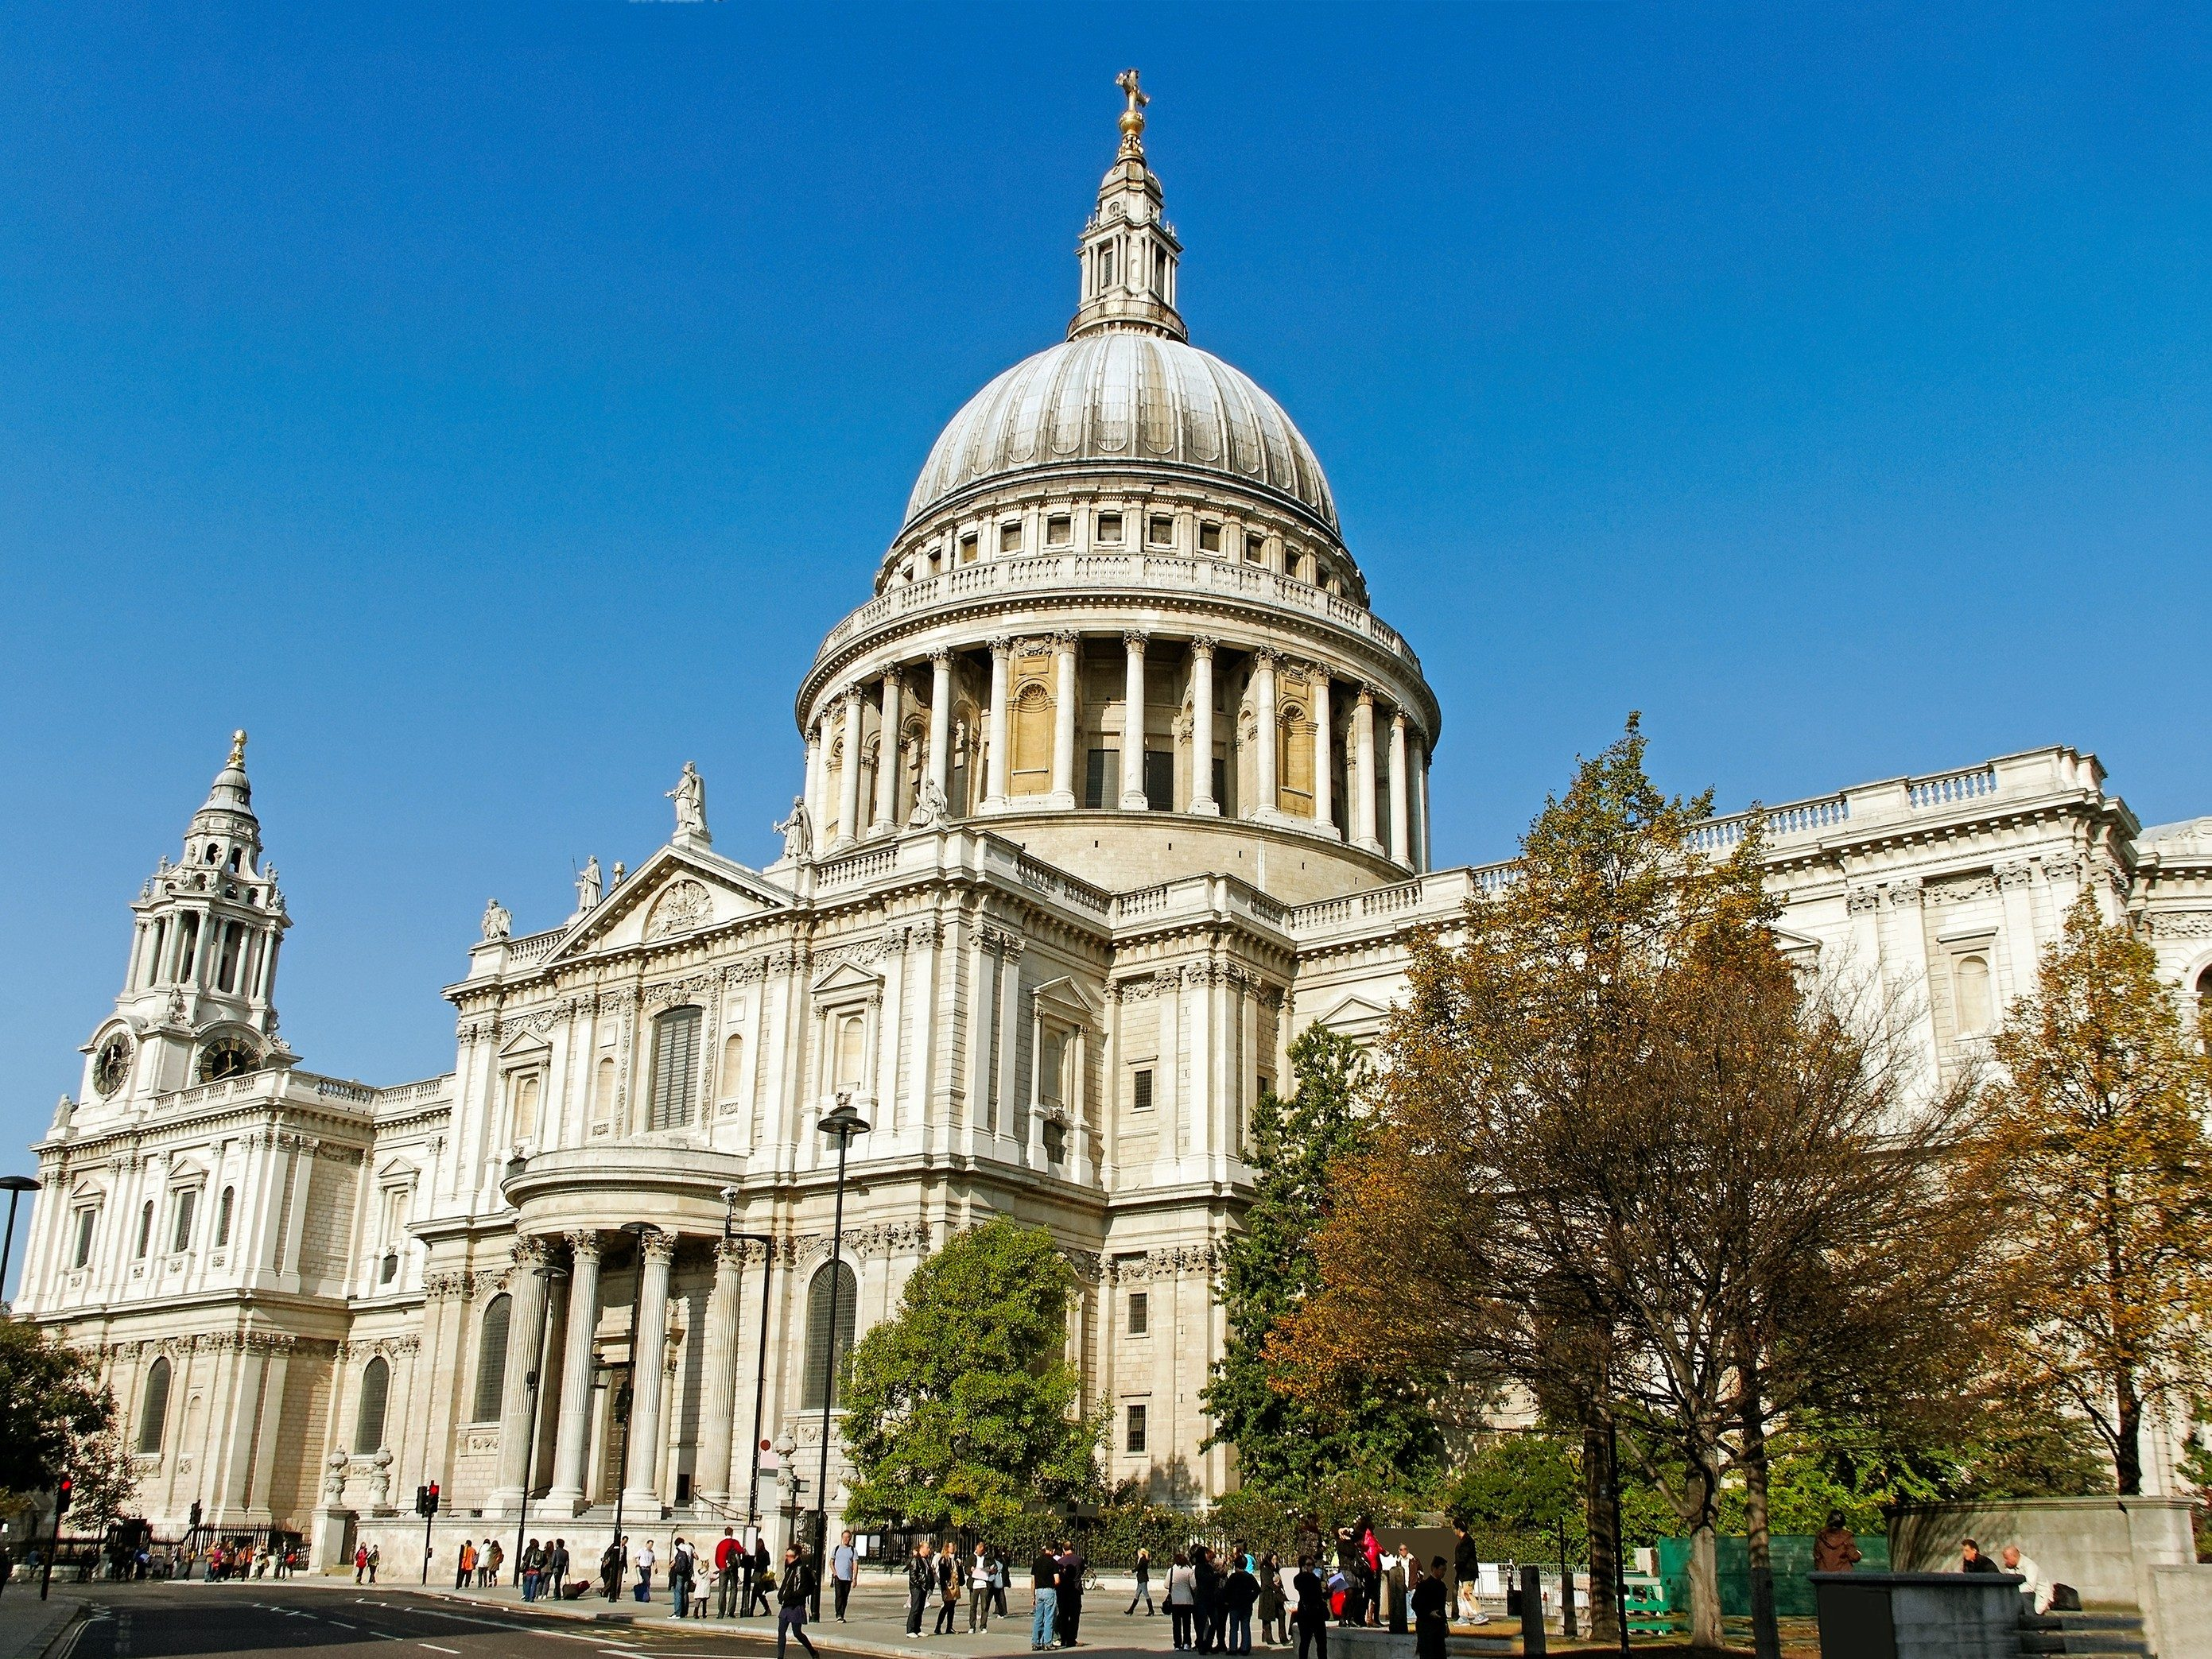 London attractions: St. Paul's Cathedral